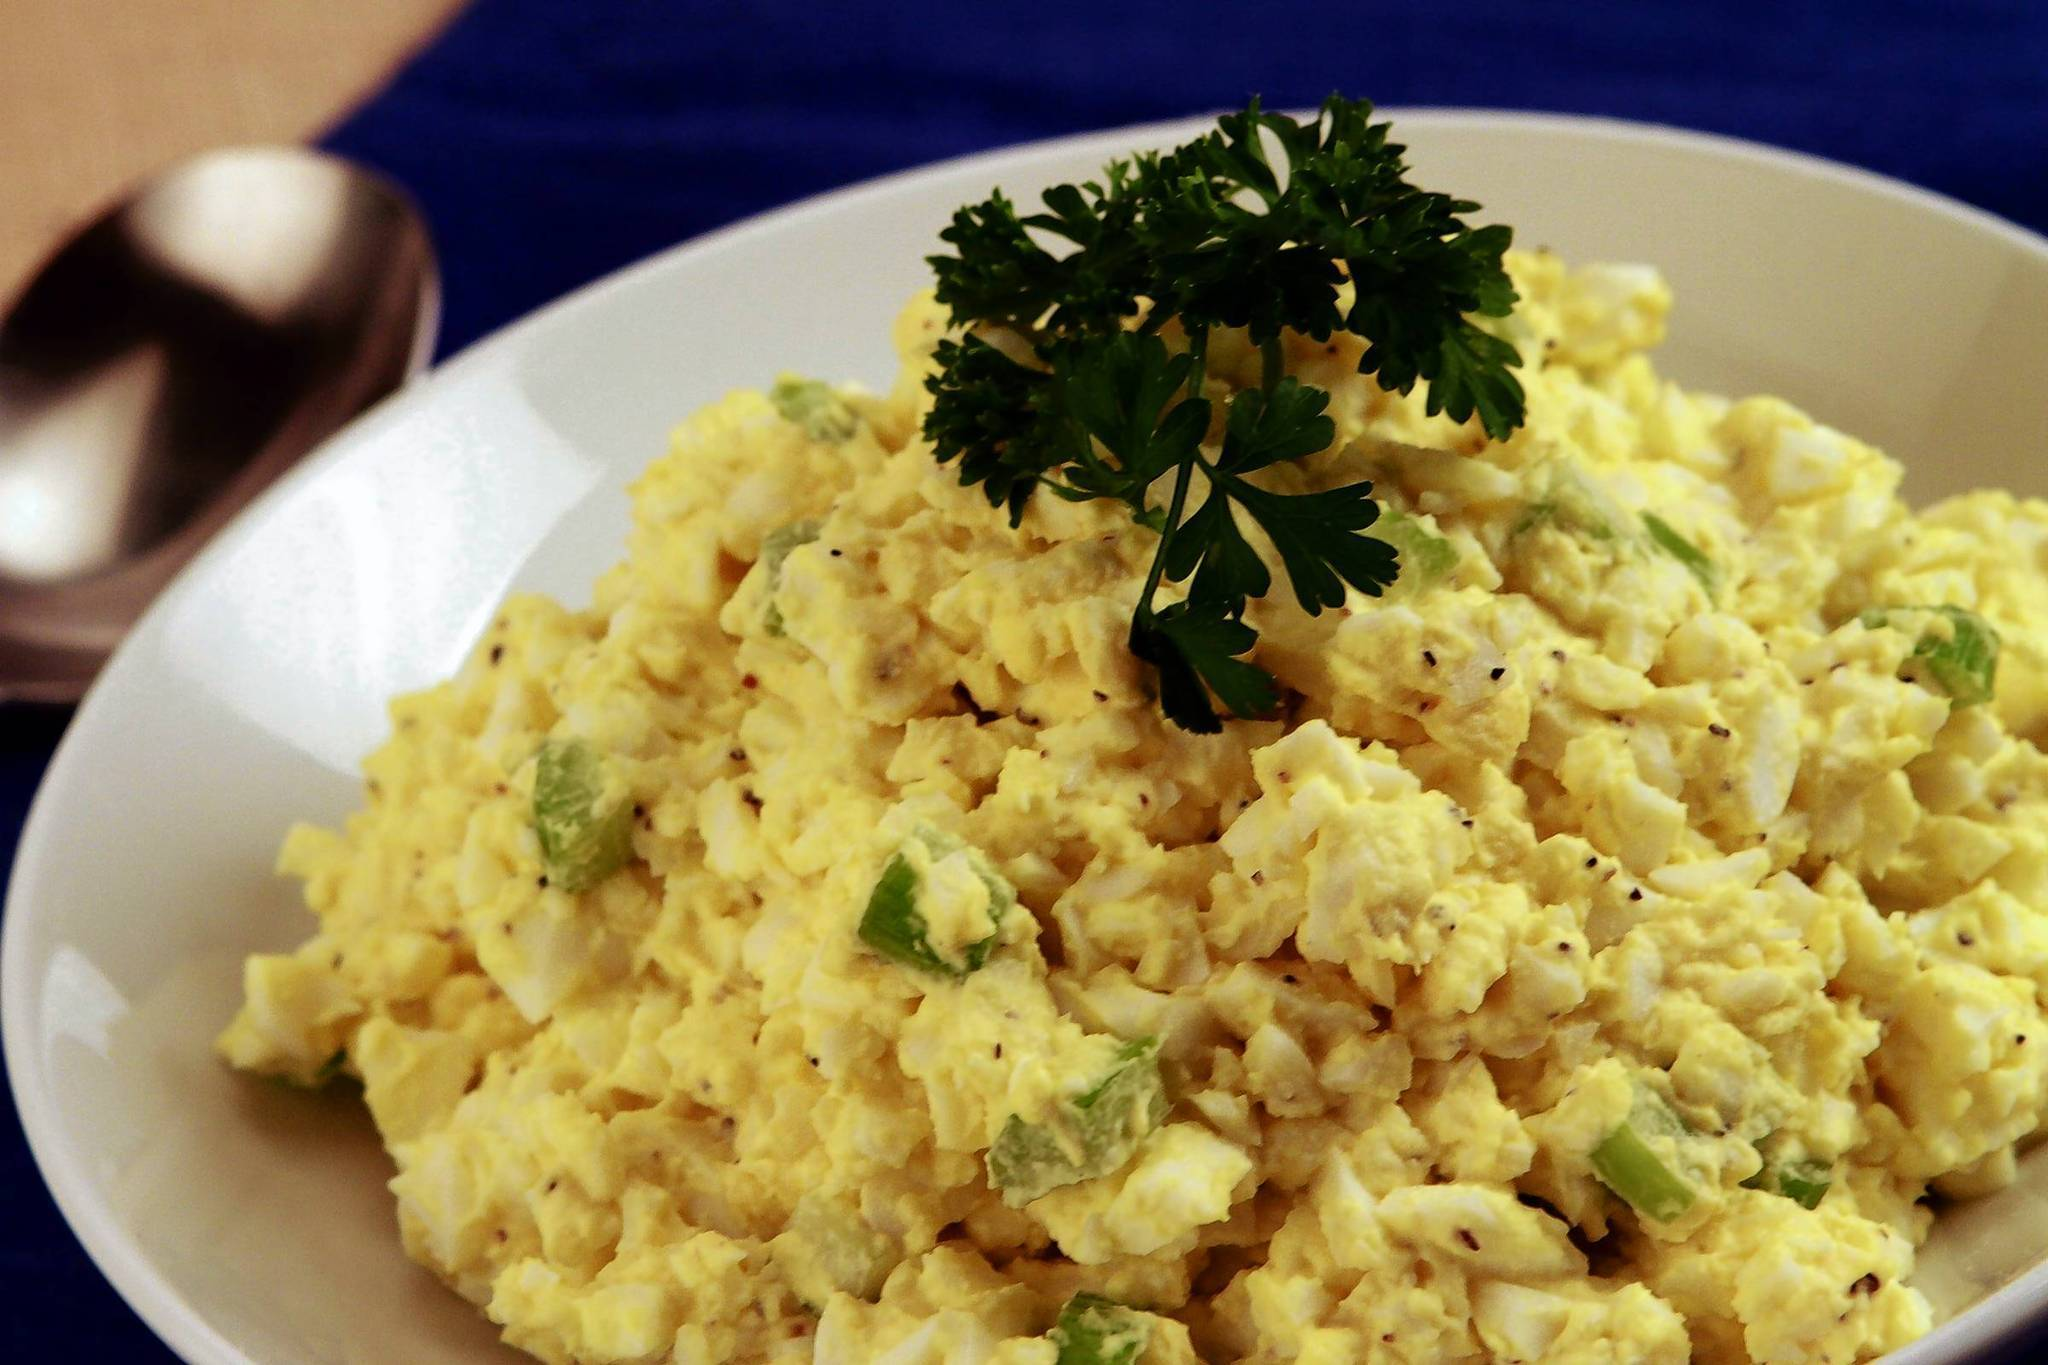 Canter's egg salad